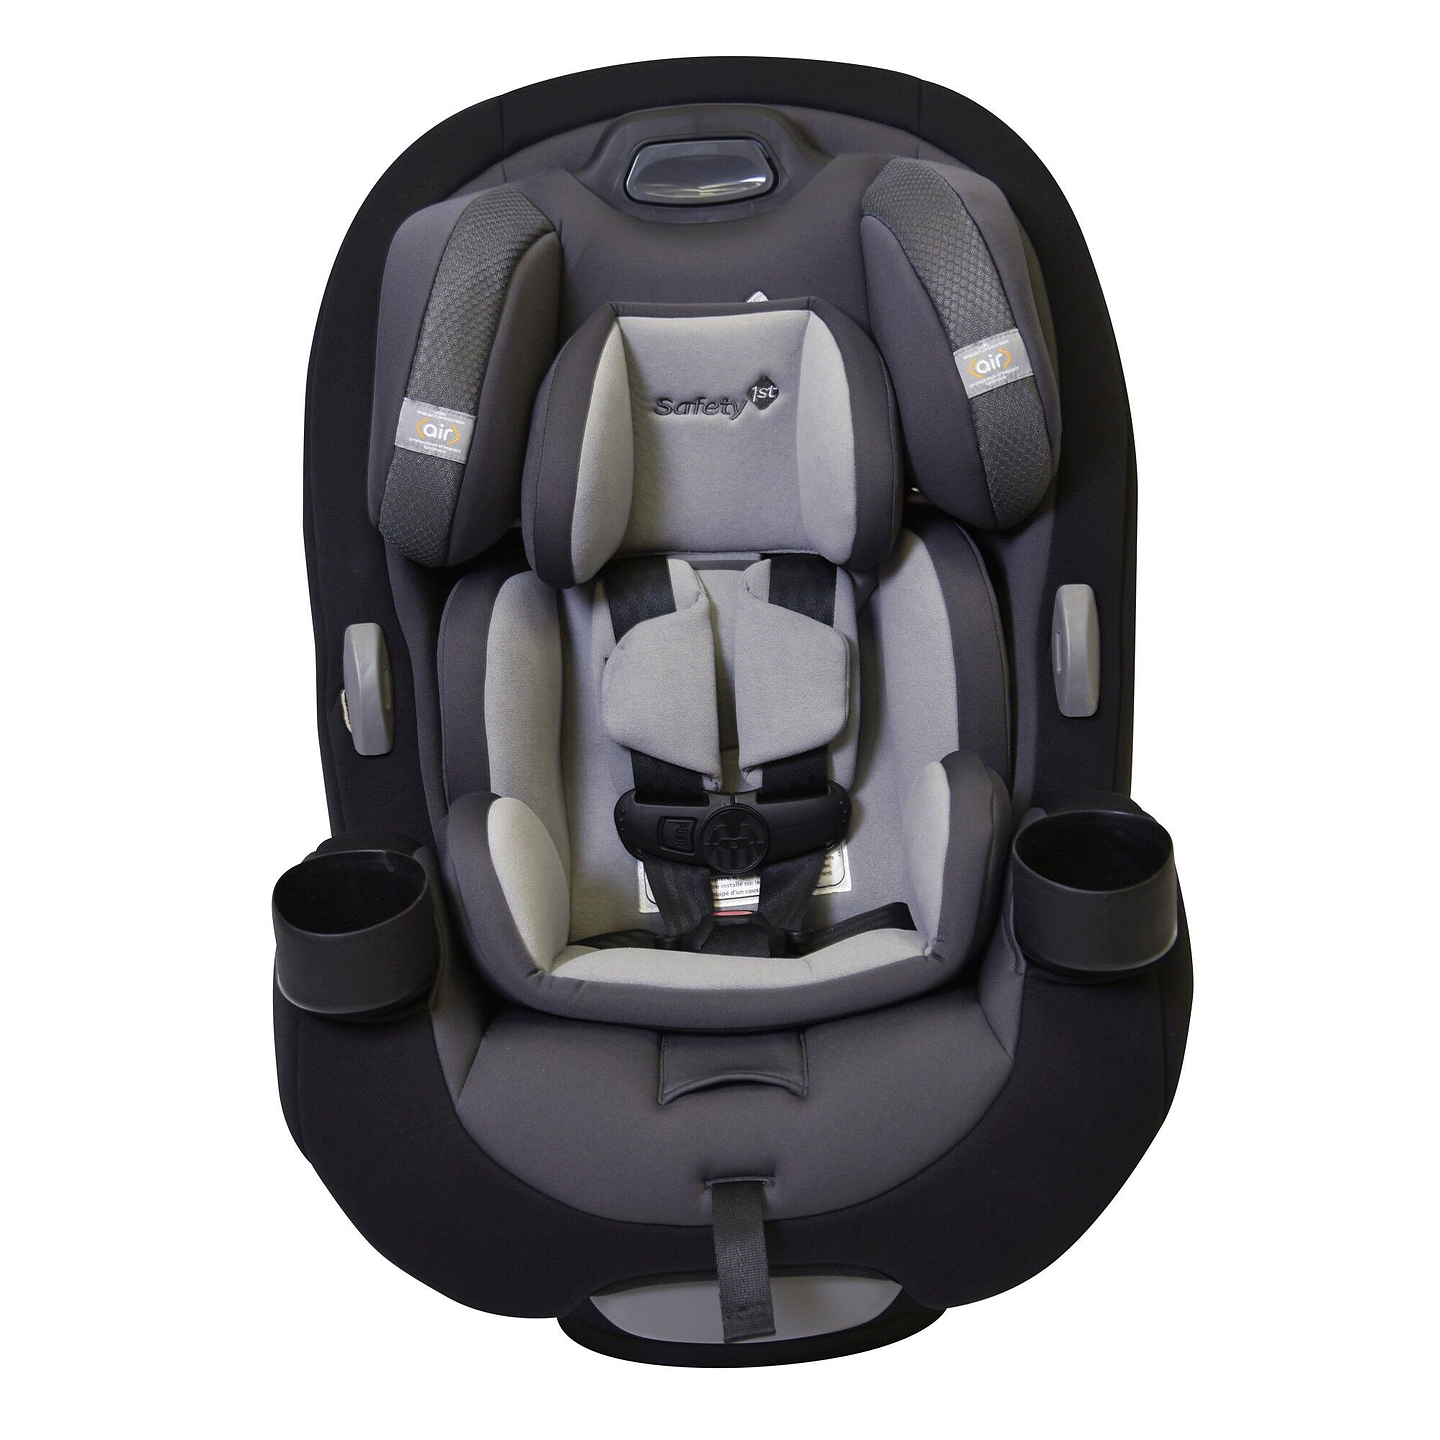 Safety 1st Siège d'auto Convertible 3 en 1 Grow and Go ARB Air - Bô-Bébé Magasin pour bébé